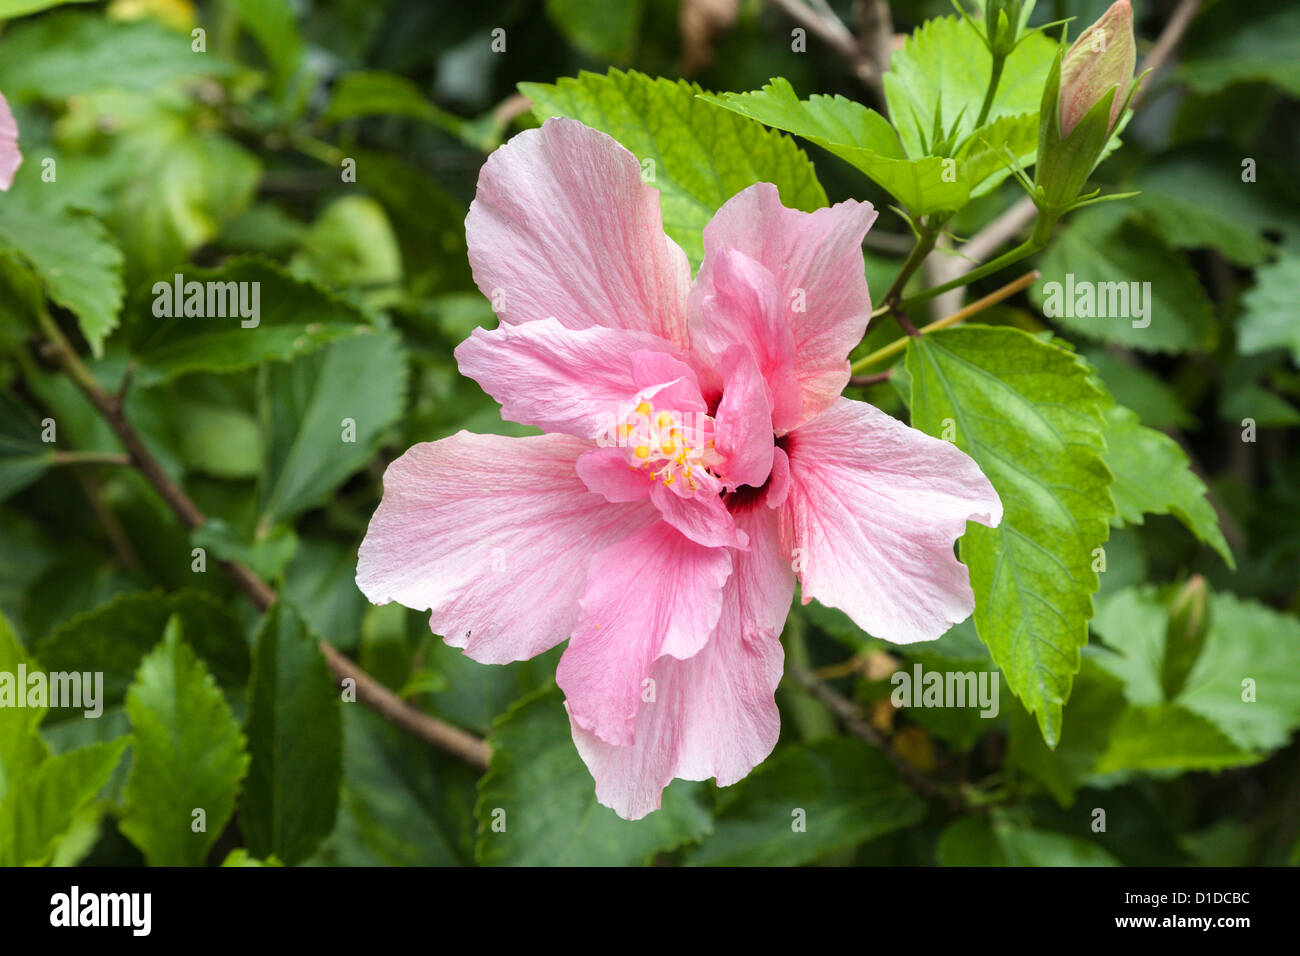 Pink hibiscus flower also known as rosemallow on leafy green plant pink hibiscus flower also known as rosemallow on leafy green plant izmirmasajfo